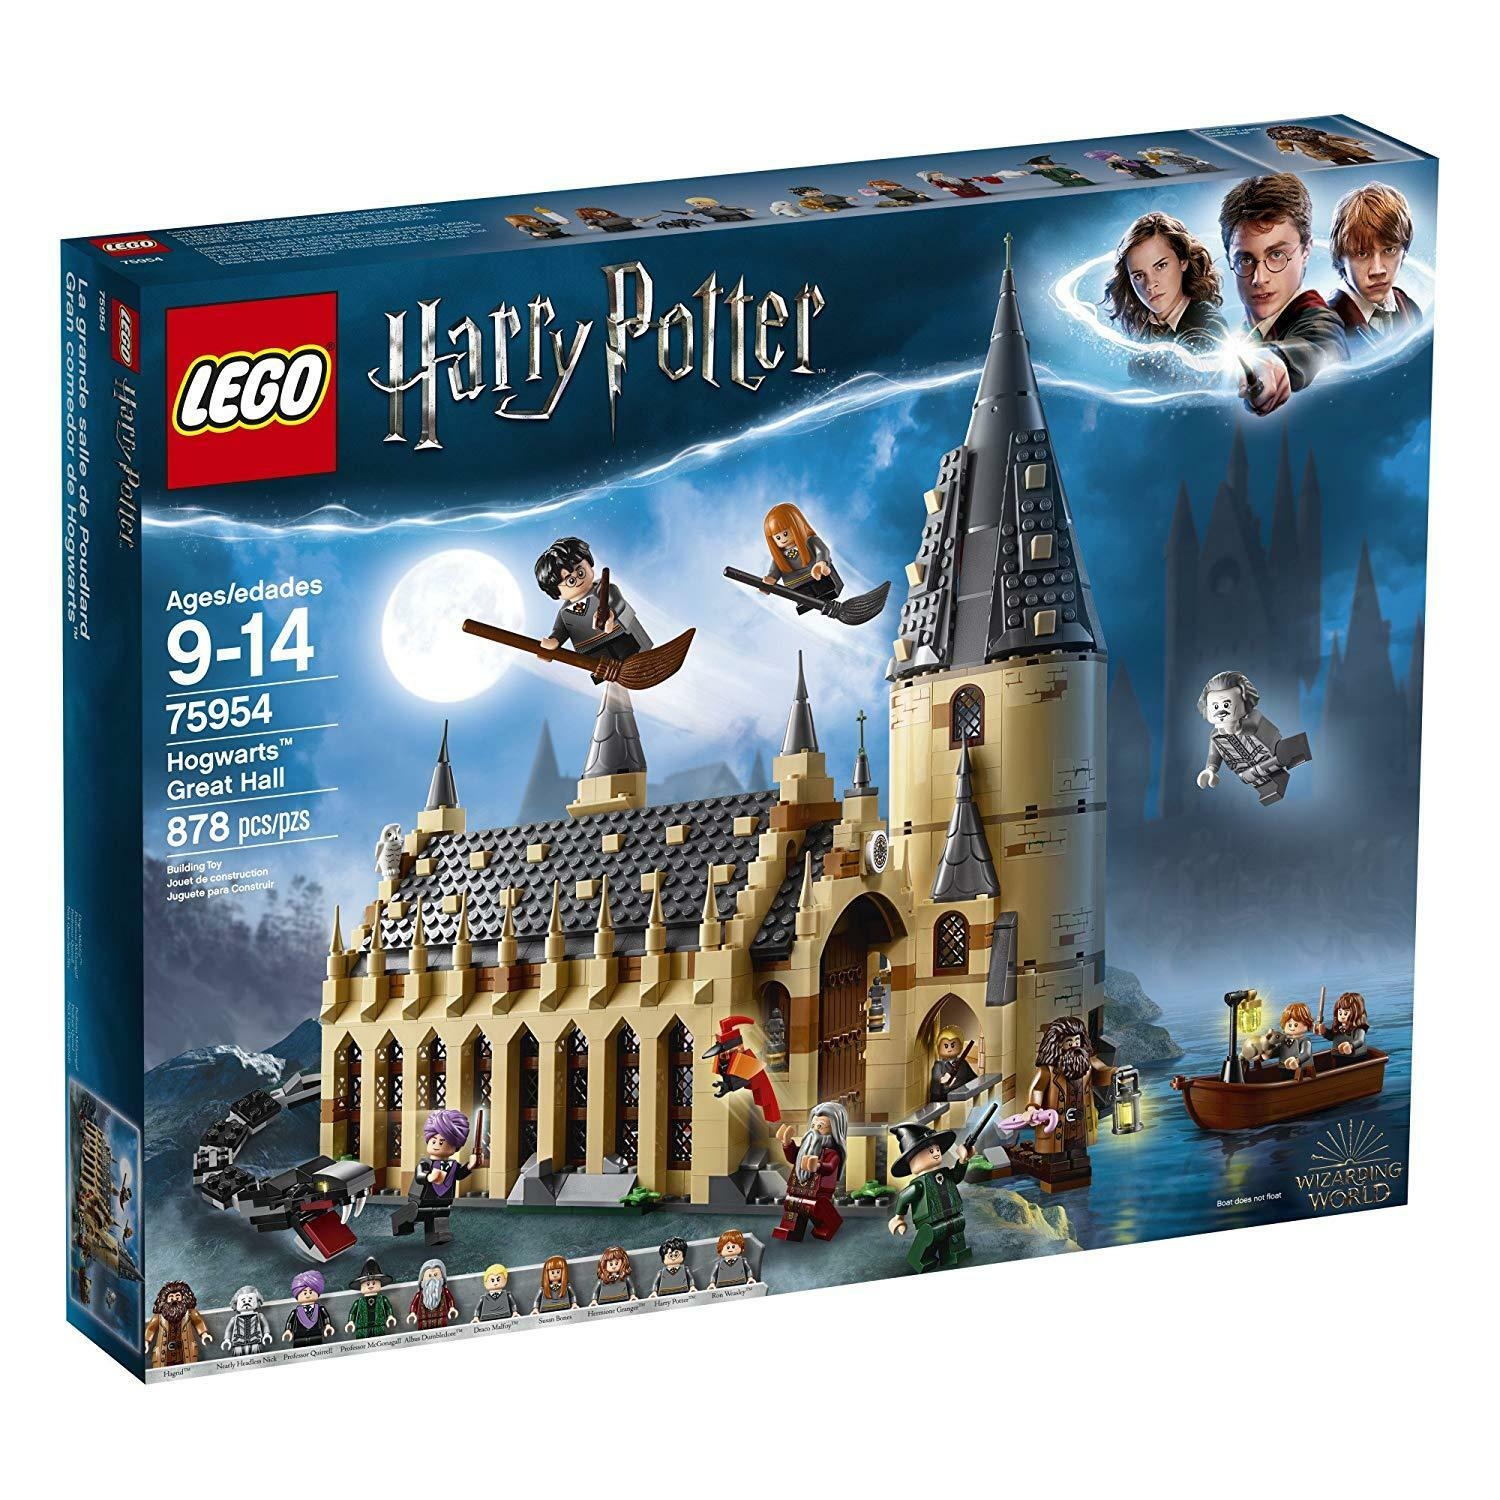 LEGO Harry Potter 75954 Wizarding World Hogwarts Great Hall Nuovo Free Shipping